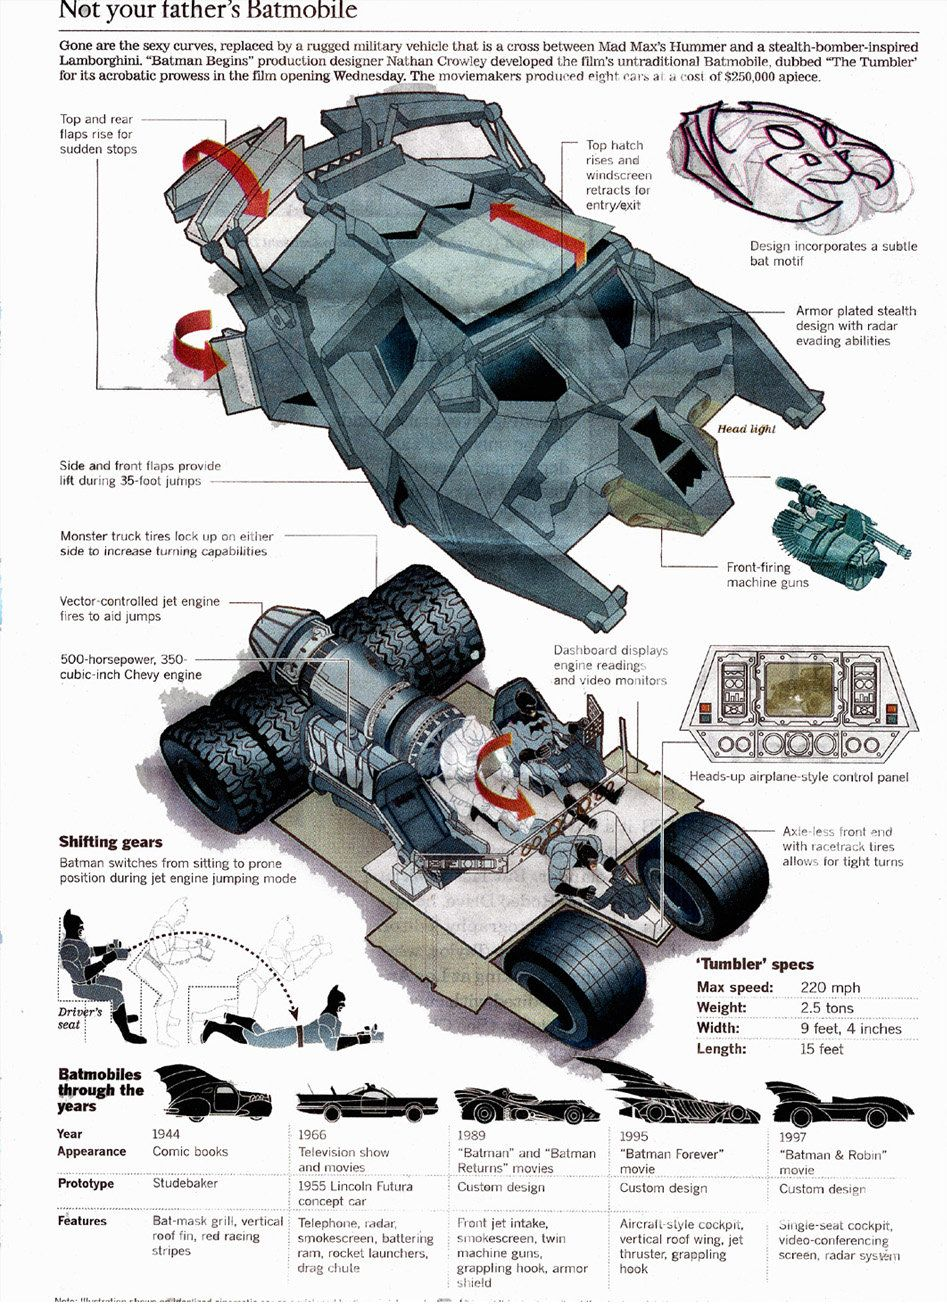 "ART: RICHARD SCOTT DIGITAL RETOUCHING OF A COPY OF BATMOBILE PRODUCTION DESIGNS FOR THE ""BATMAN BEGINS"" MOVIE. ORIGINAL APPEARS IN THE BOOK ""THE HISTORY OF THE BATMOBILE"" BY NATHAN CROWLEY, PRODUCT..."